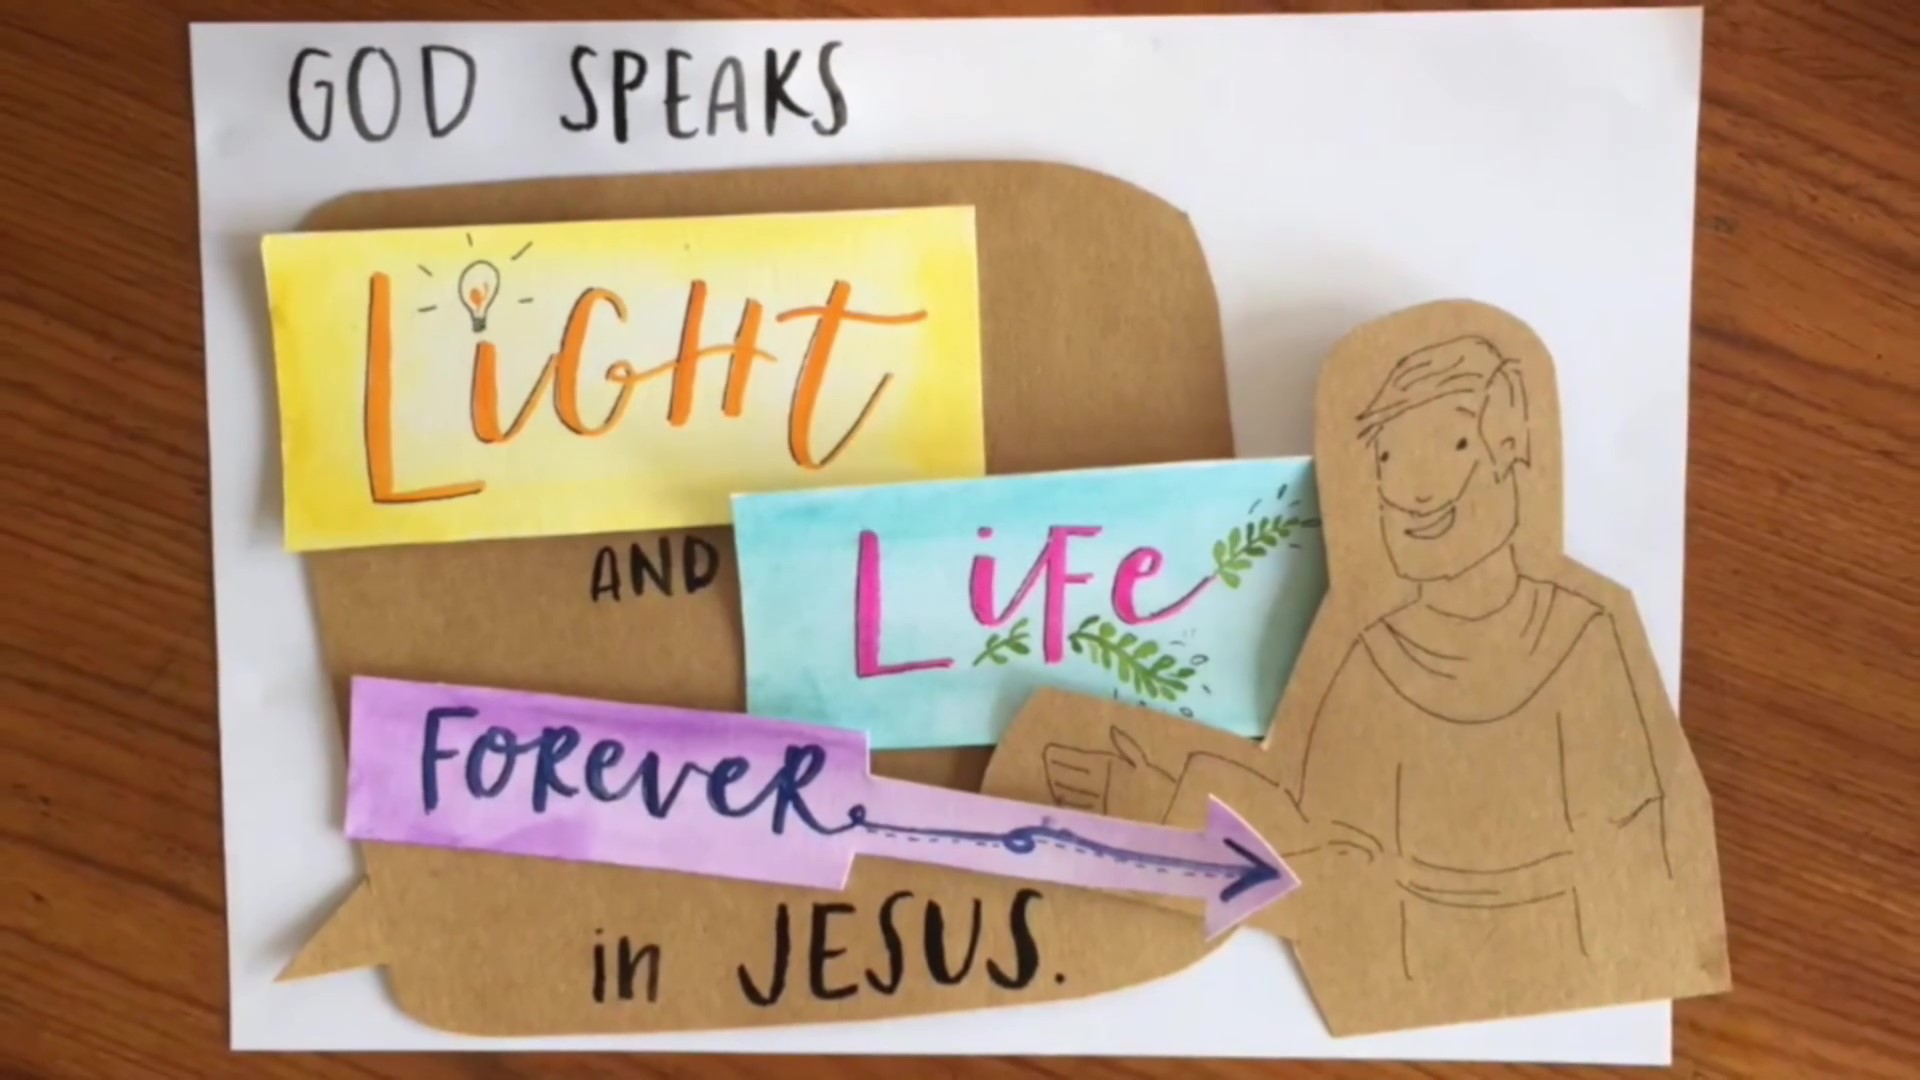 God Speaks Light and Life